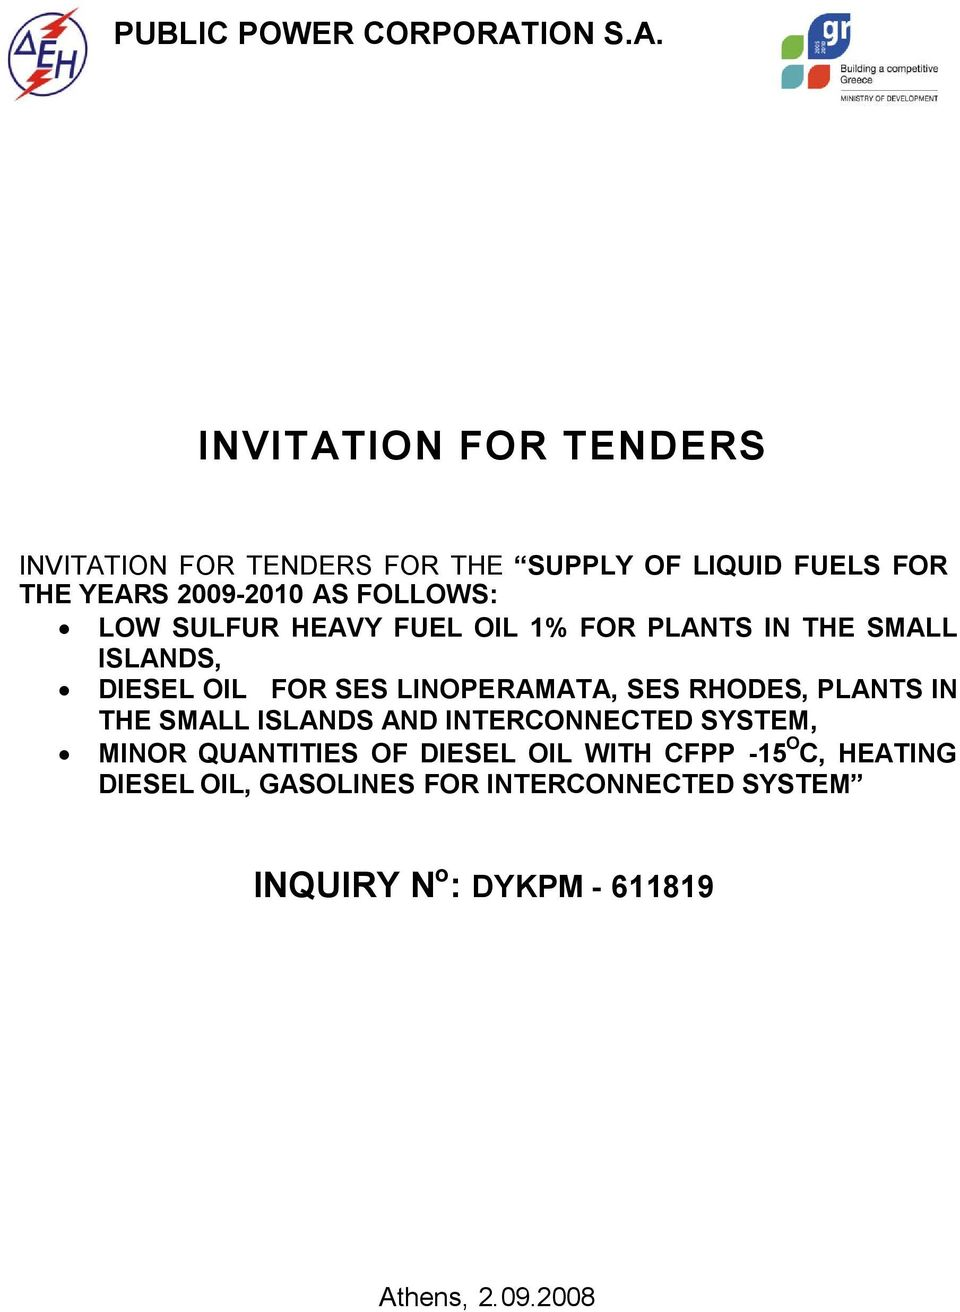 INVITATION FOR TENDERS INVITATION FOR TENDERS FOR THE SUPPLY OF LIQUID FUELS FOR THE YEARS 2009-2010 AS FOLLOWS: